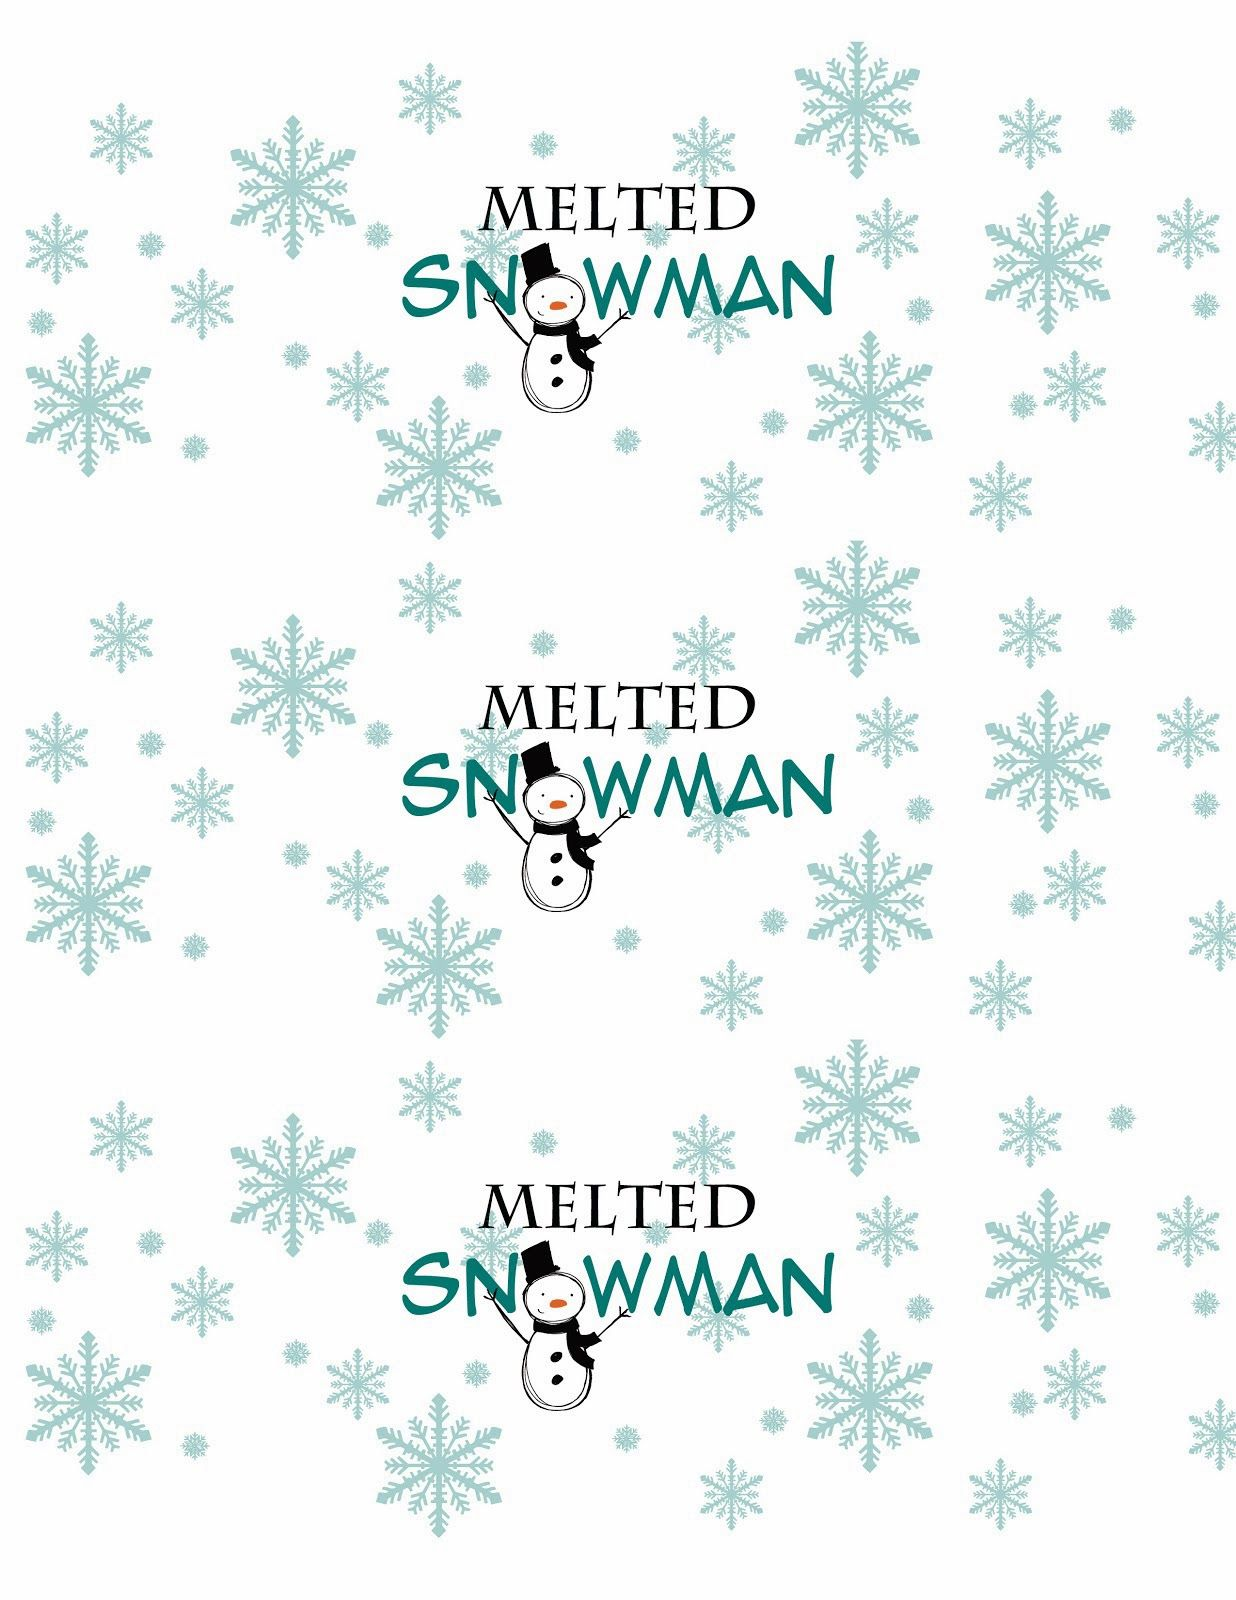 Labels for bottles of water for Christmas presents